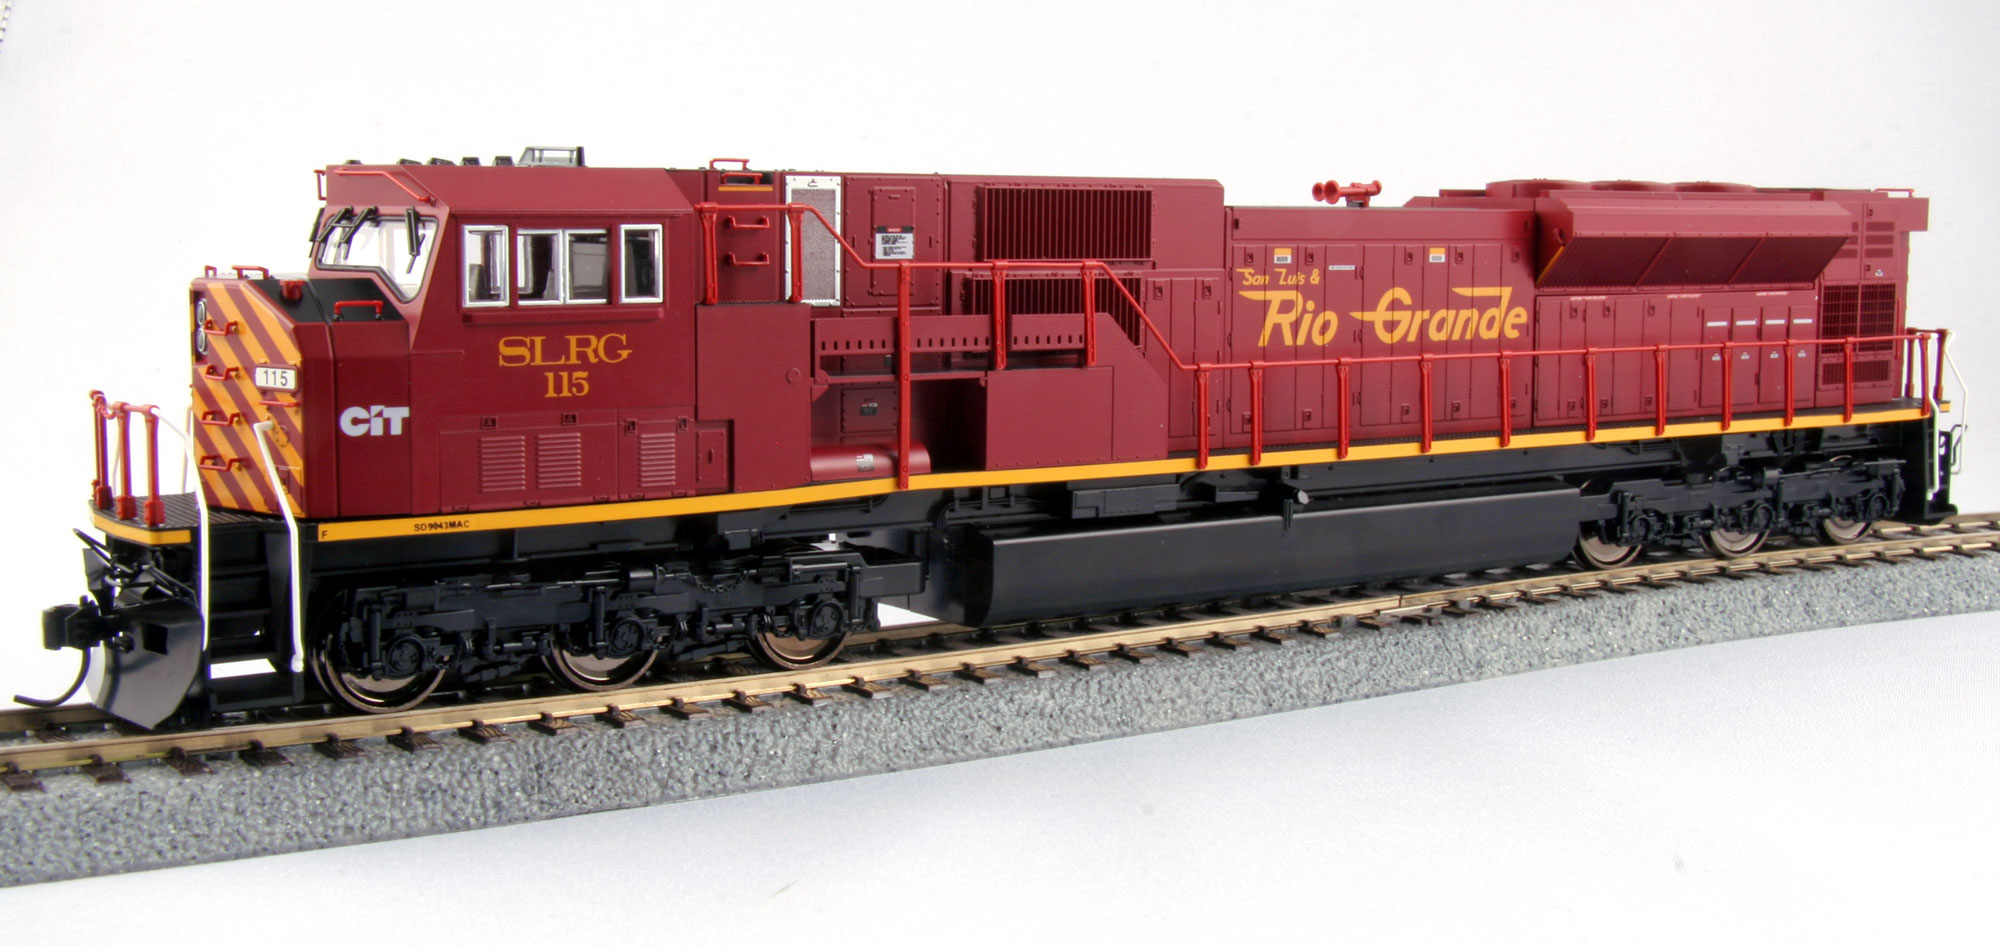 Kato 37-6390 HO San Luis & Rio Grande EMD SD90/43MAC - Standard DC #11 This is a Kato USA Inc 376390 HO Scale EMD SD90/43MAC - Standard DC San Luis & Rio Grande #115 (maroon, yellow). Models are equipped with bright white LED headlights, semi-automatic knuckle couplers, factory-installed DCC socket, wired electrical pickup with a five-pole motor with dual bras flywheels, lighted front-end ditch lights, printed numberboards, separate MY hoses, windshield wipers and 45 scale wheels.Condition: Factory New (C-9All original; unused; factory rubs and evidence of handling, shipping and factory test run.Standards for all toy train related accessory items apply to the visual appearance of the item and do not consider the operating functionality of the equipment.Condition and Grading Standards are subjective, at best, and are intended to act as a guide. )Operational Status: FunctionalThis item is brand new from the factory.Original Box: Yes (P-9May have store stamps and price tags. Has inner liners.)Manufacturer: KatoModel Number: 37-6390MSRP: $195.00Scale/Era: HO ModernModel Type: Diesel LocoAvailability: Ships in 1 Business Day!The Trainz SKU for this item is P11962603. Track: 11962603 - No Location Assigned - 001 - TrainzAuctionGroup00UNK - TDIDUNK